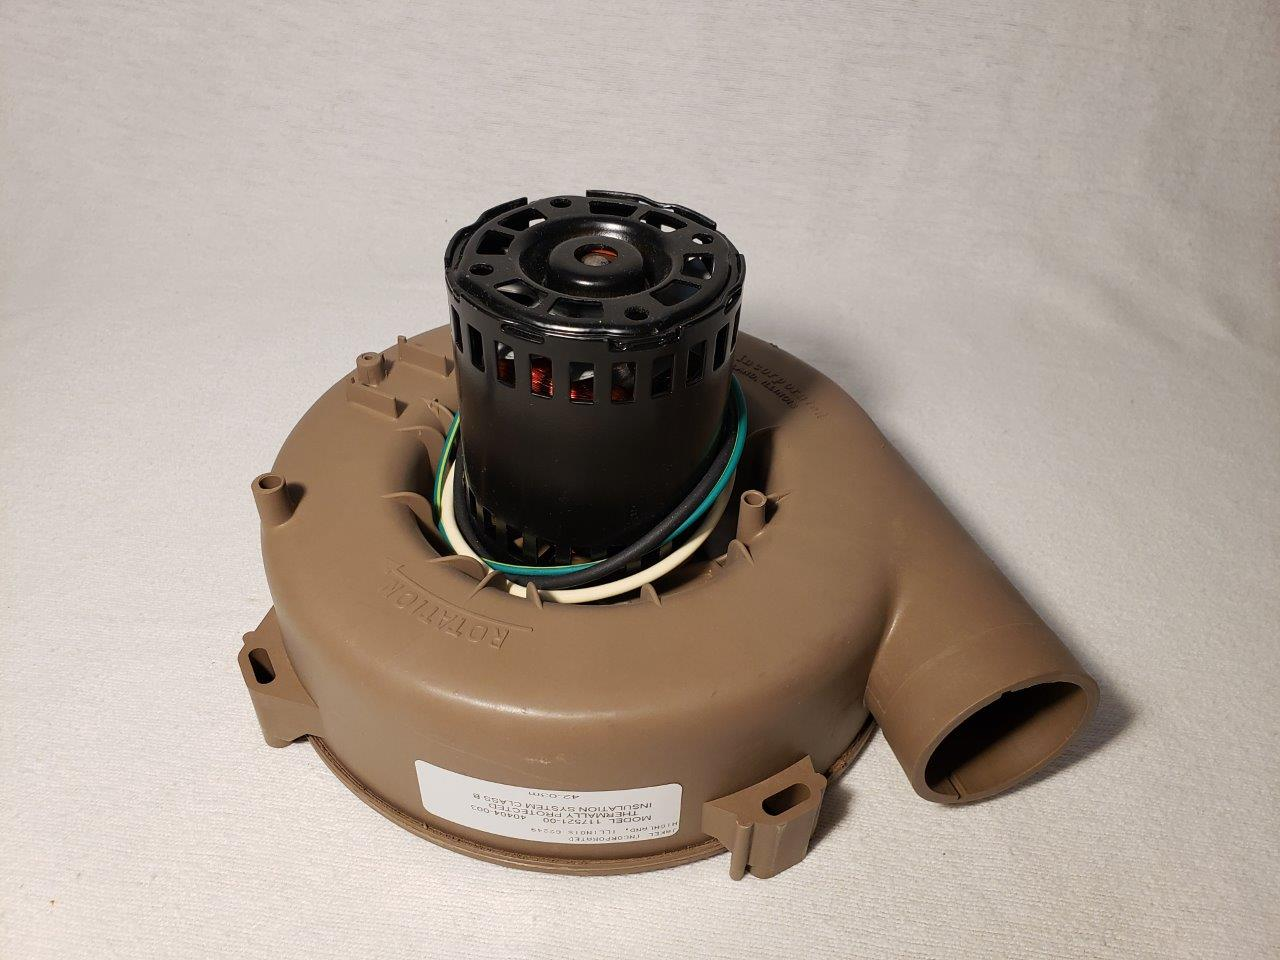 Packard 66404 1/30 HP Draft Inducer Johnstone X89-597 for Armstrong 40404-003 40404003